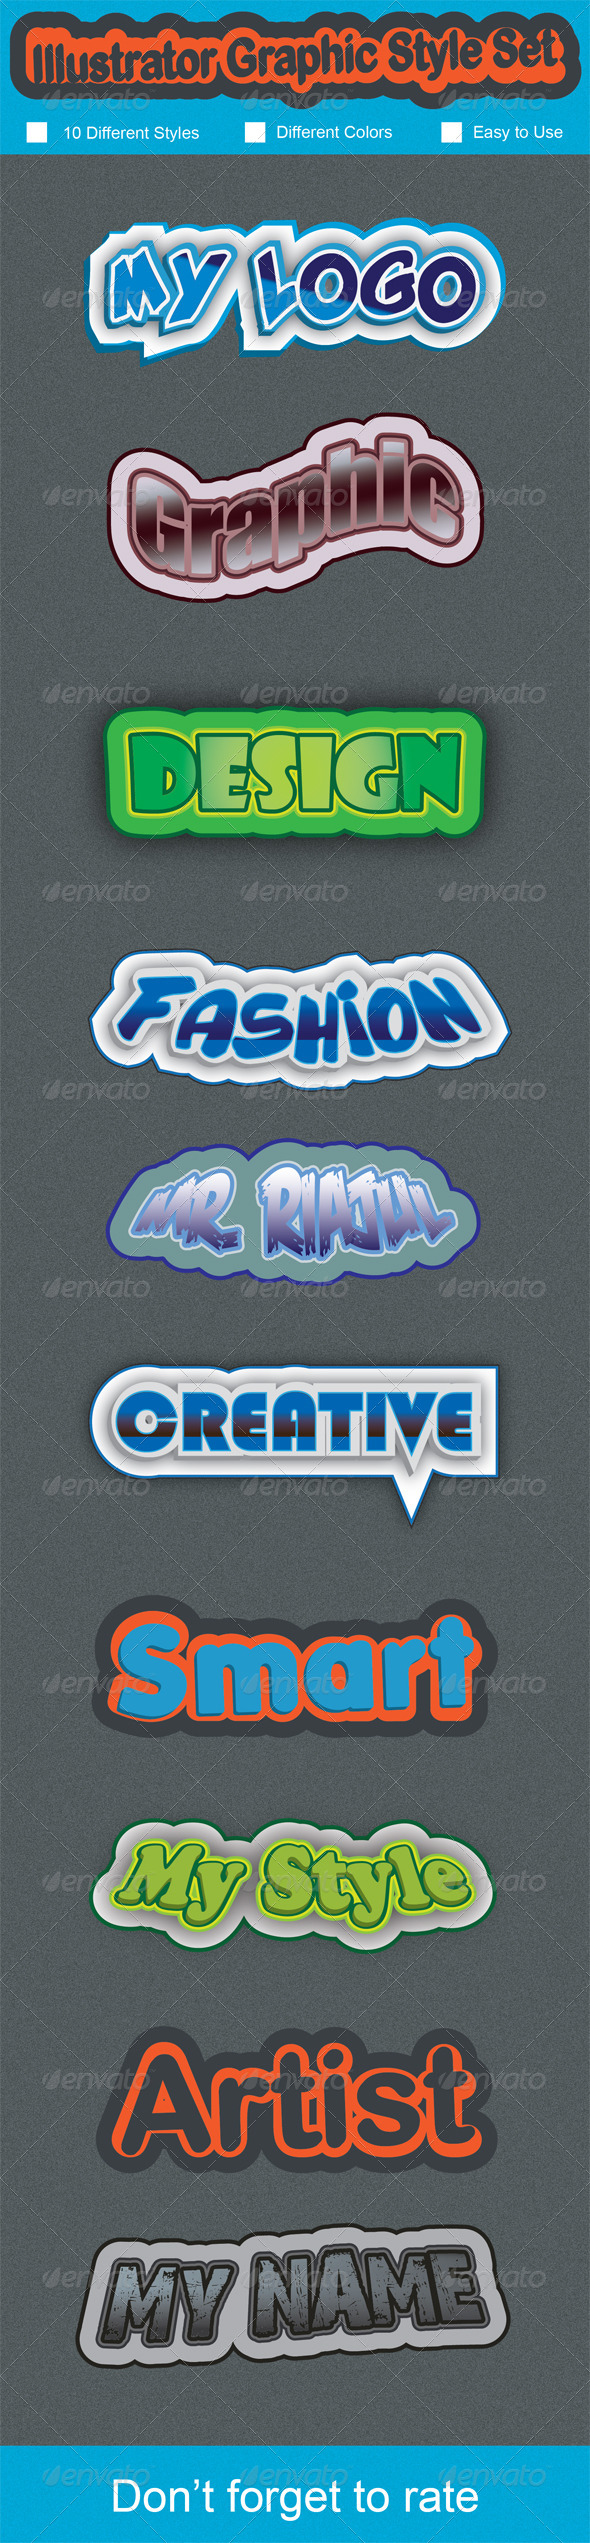 GraphicRiver Graphic Style Set 7472876